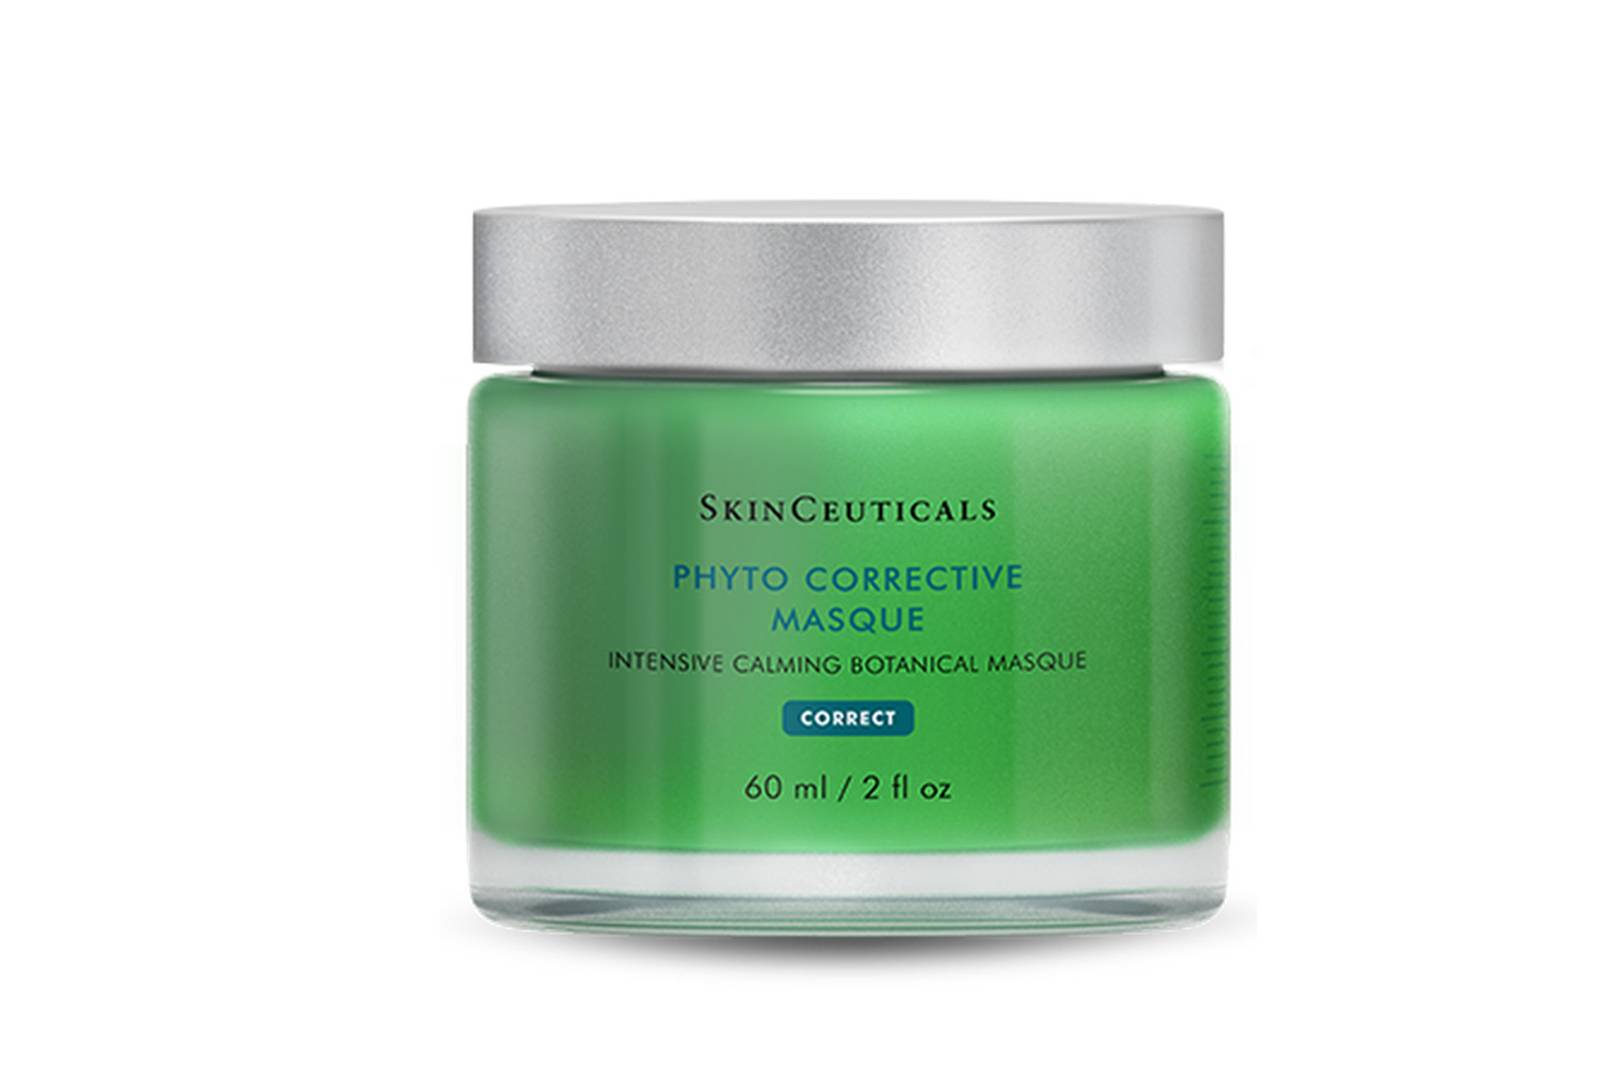 Jelly Face Masks What They Are Best Ones To Buy Reviews Glamour Uk Mineral Botanica All In One Aloe Vera